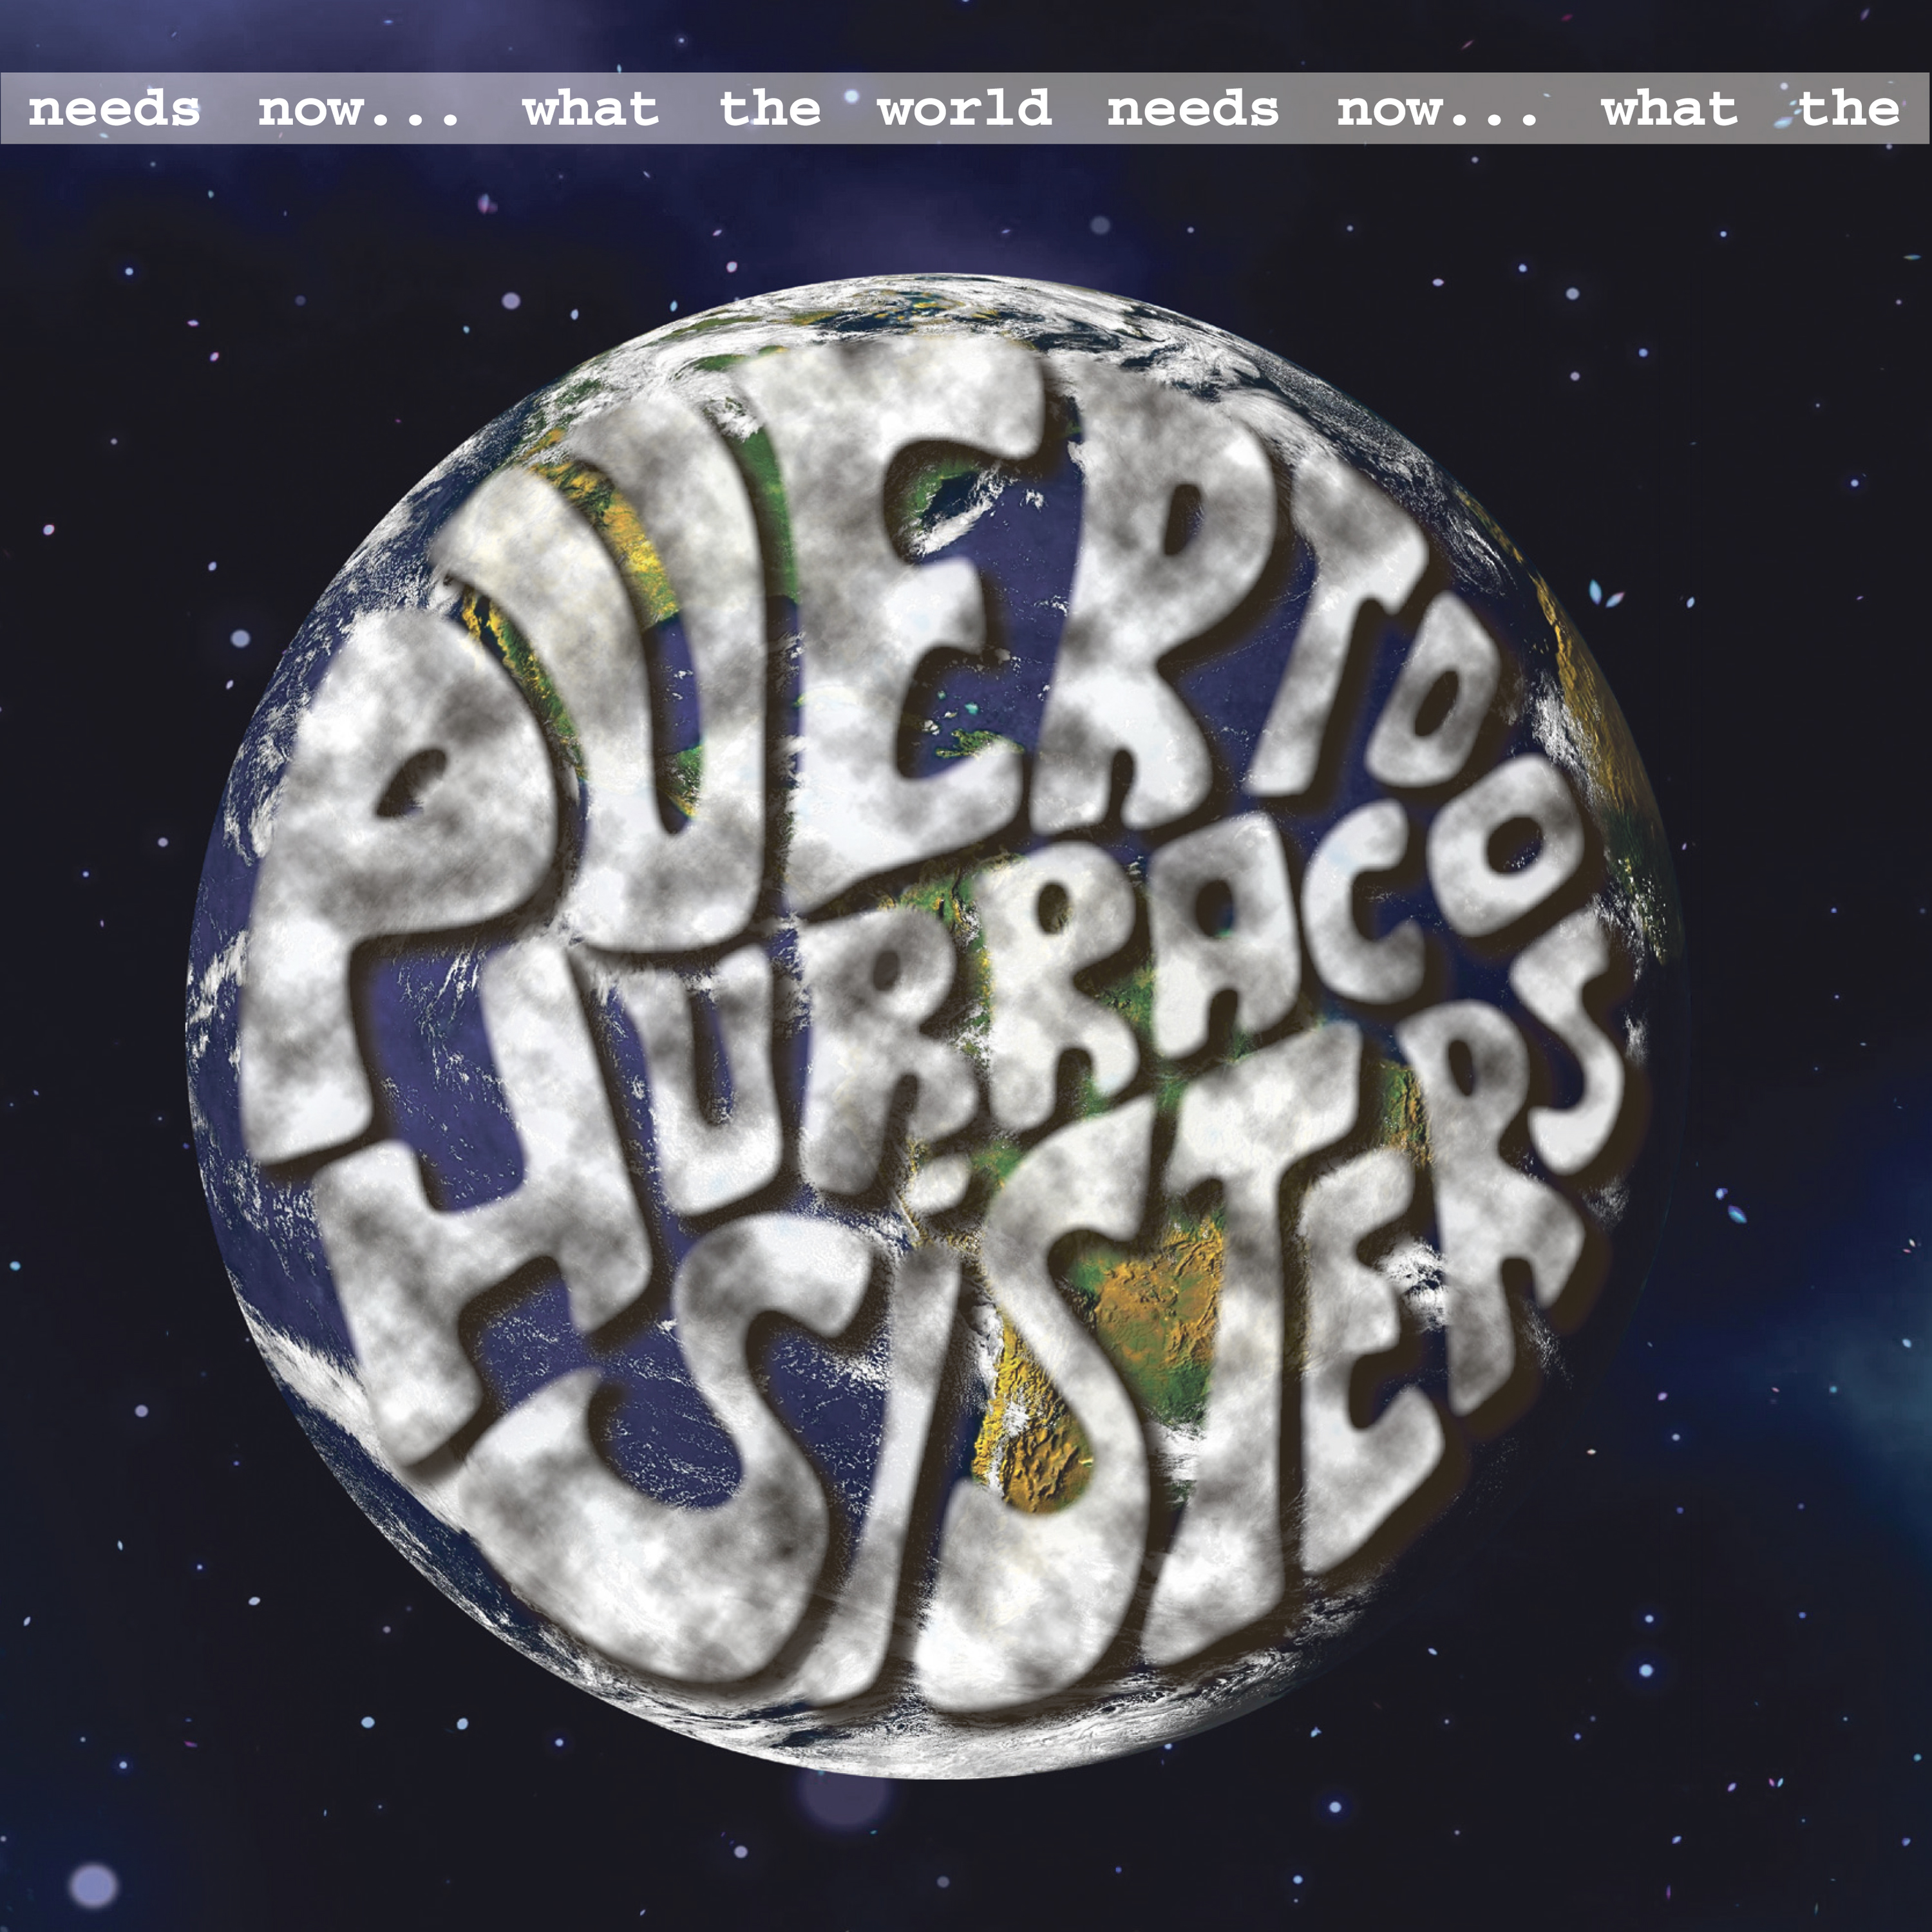 Puerto Hurraco Sisters - What The World Needs Now